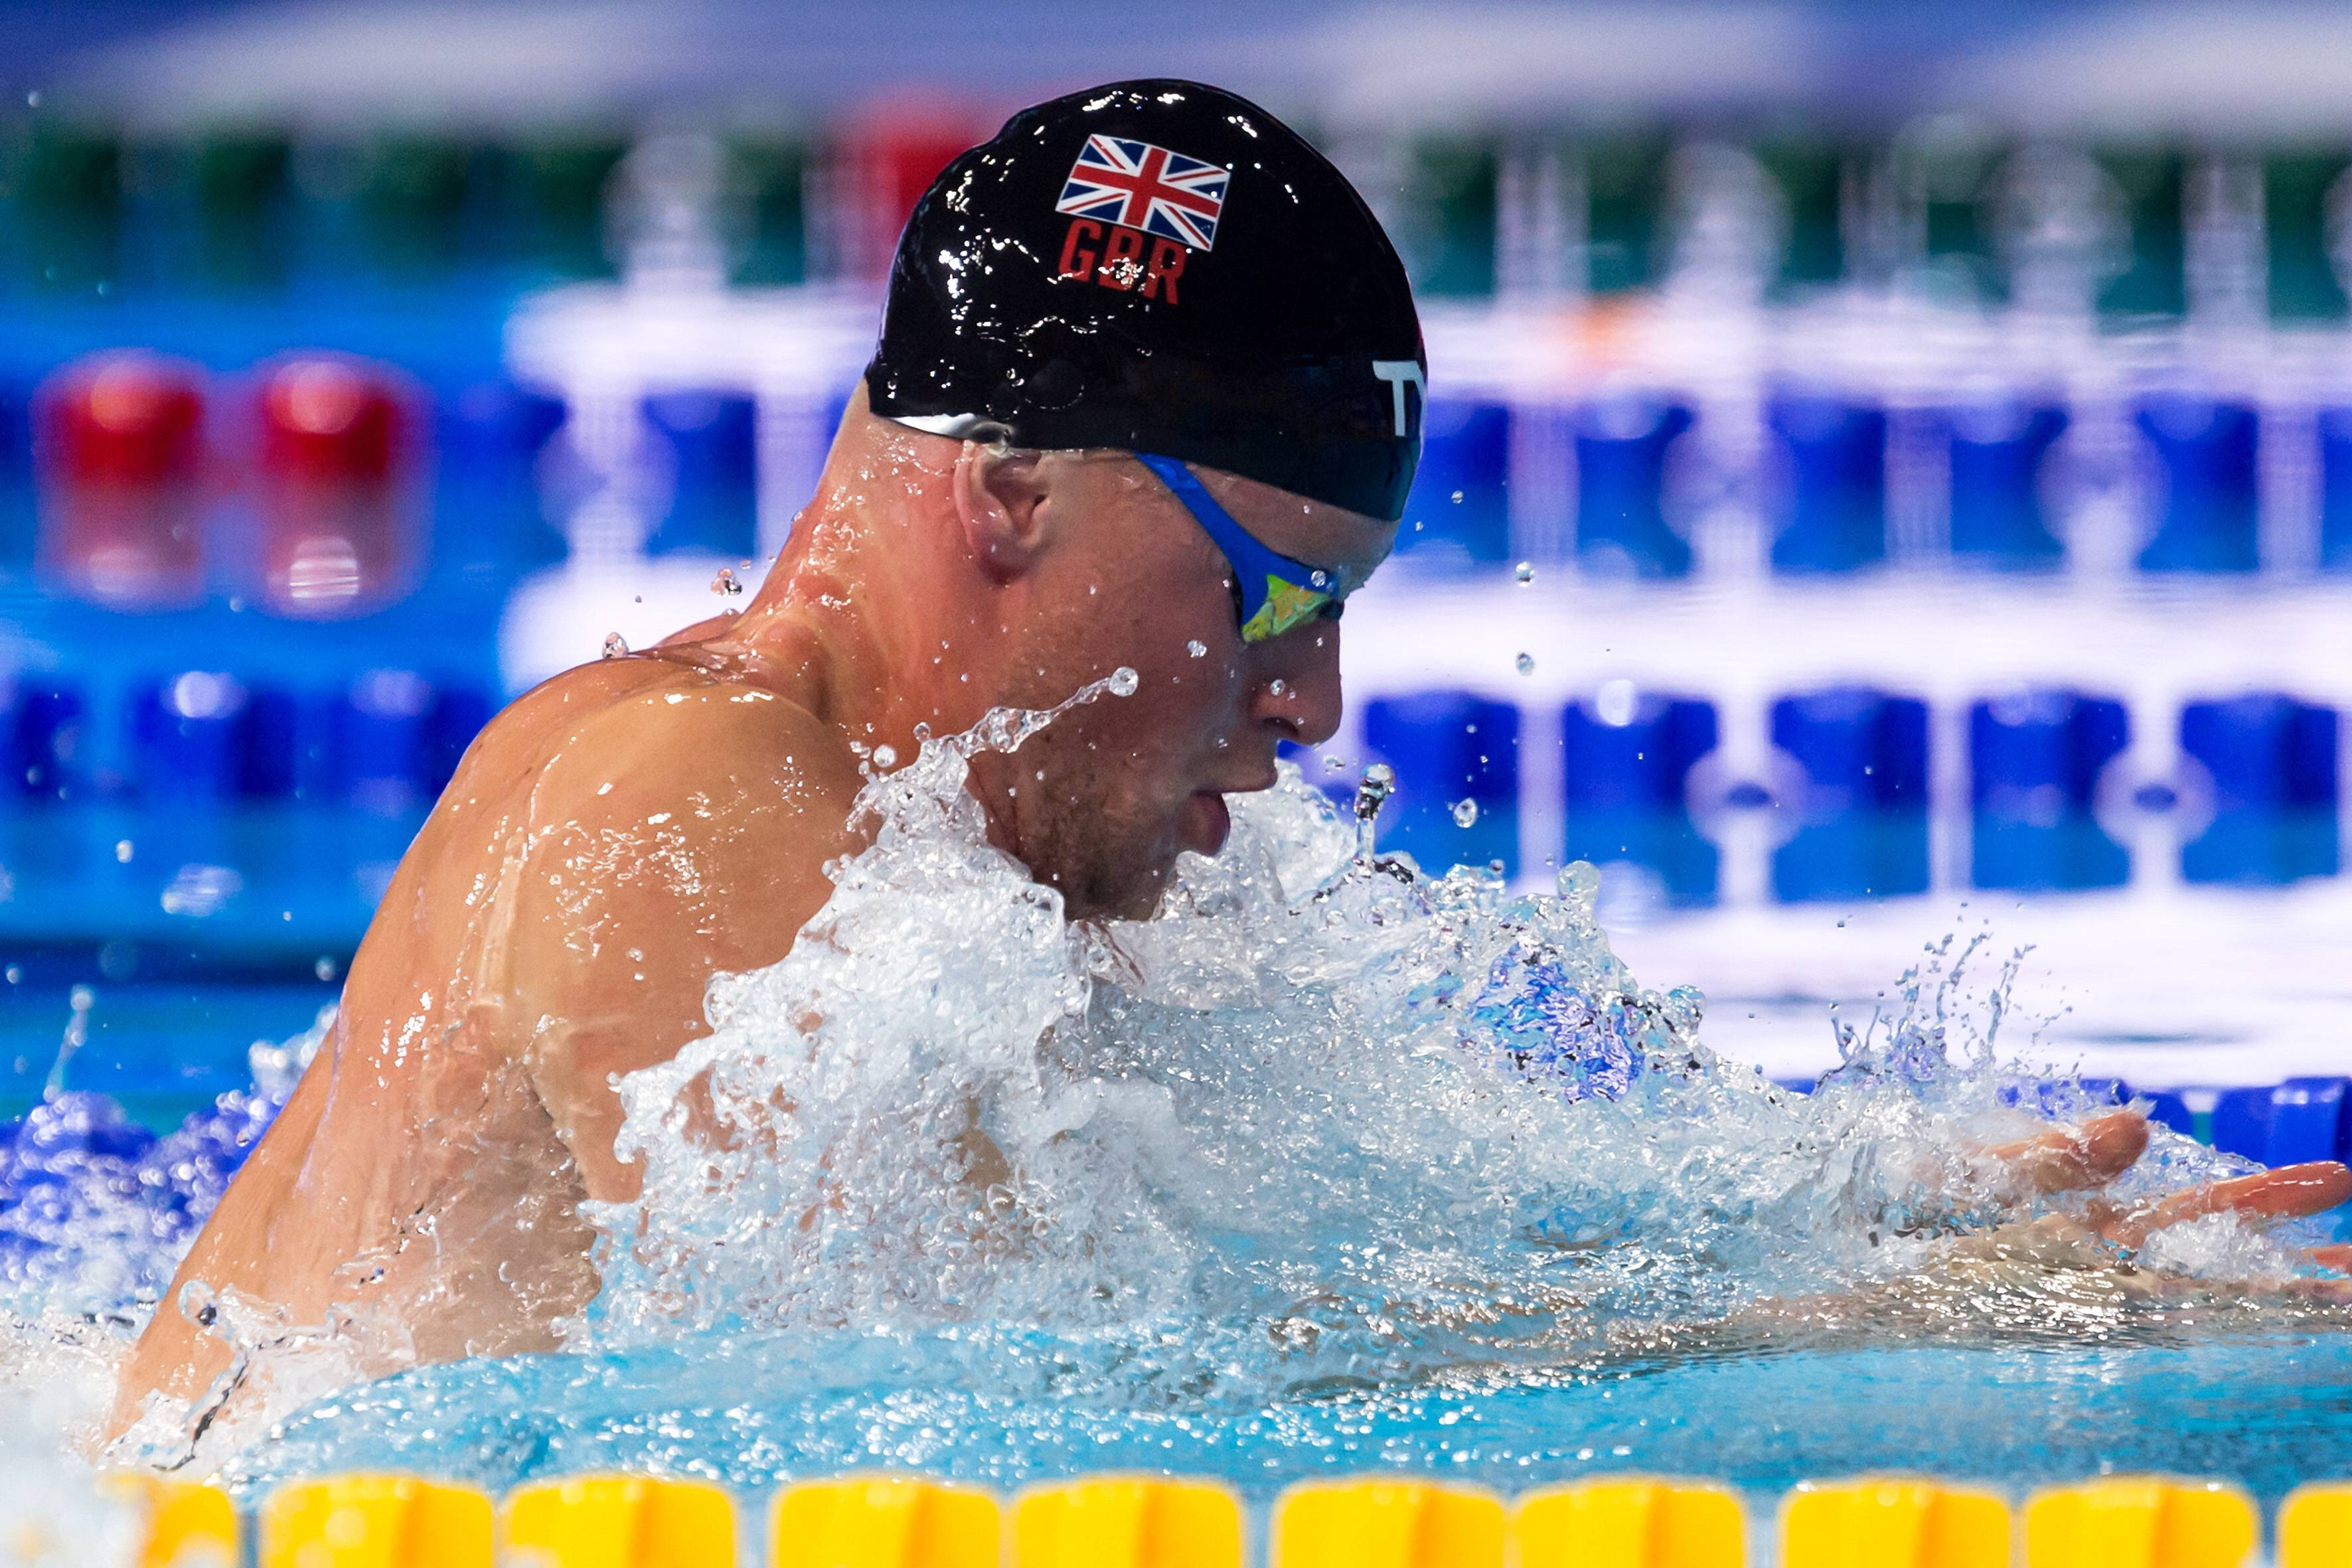 Throwback Thursday – Peaty's glory in Glasgow at the 2018 European Championships